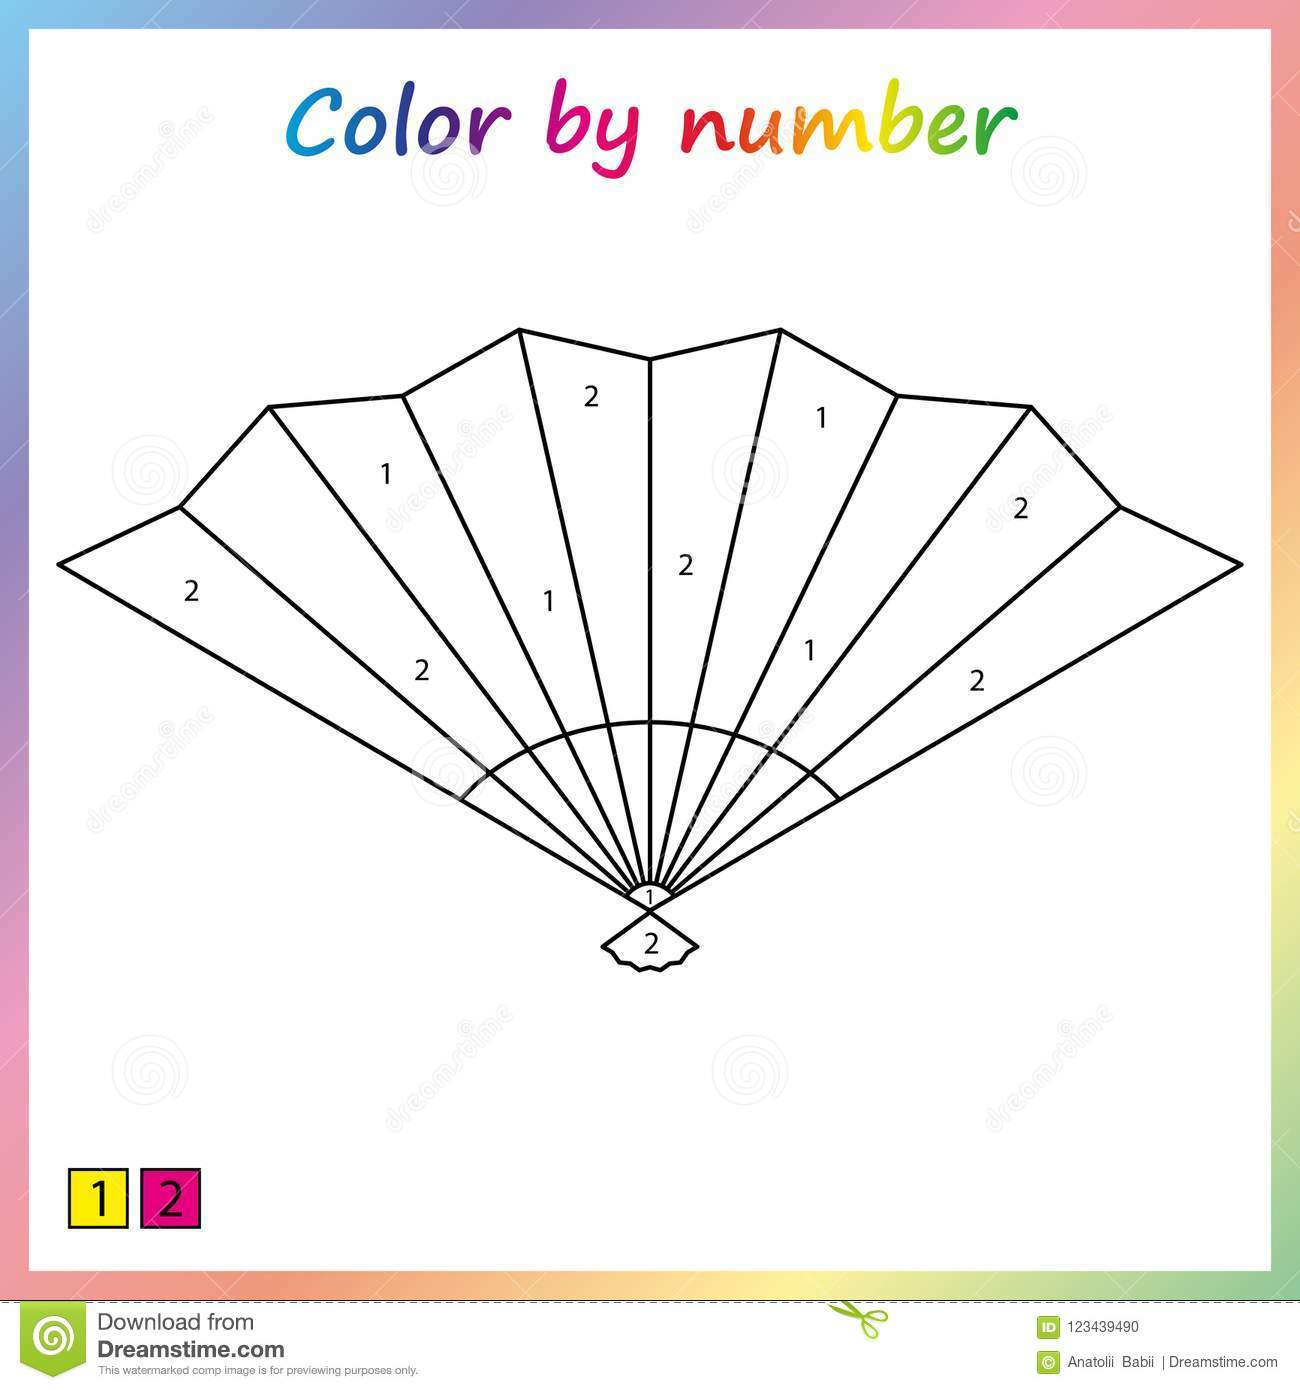 Worksheet For Education. Painting Page, Color By Numbers. Game For ...